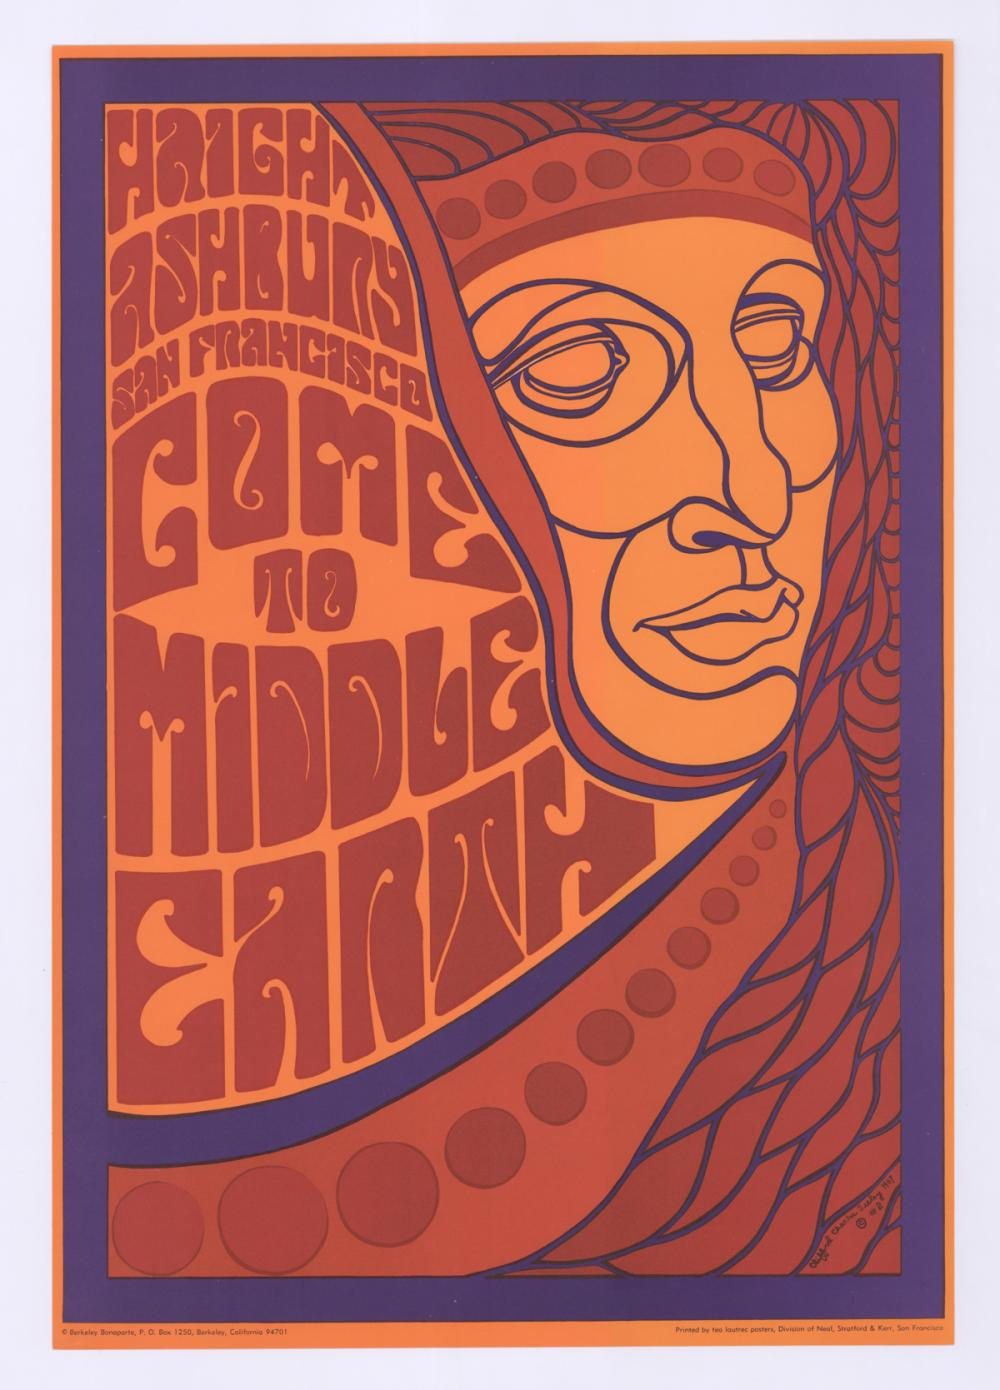 Lot 619: Haight-Ashbury Come To Middle Poster #2